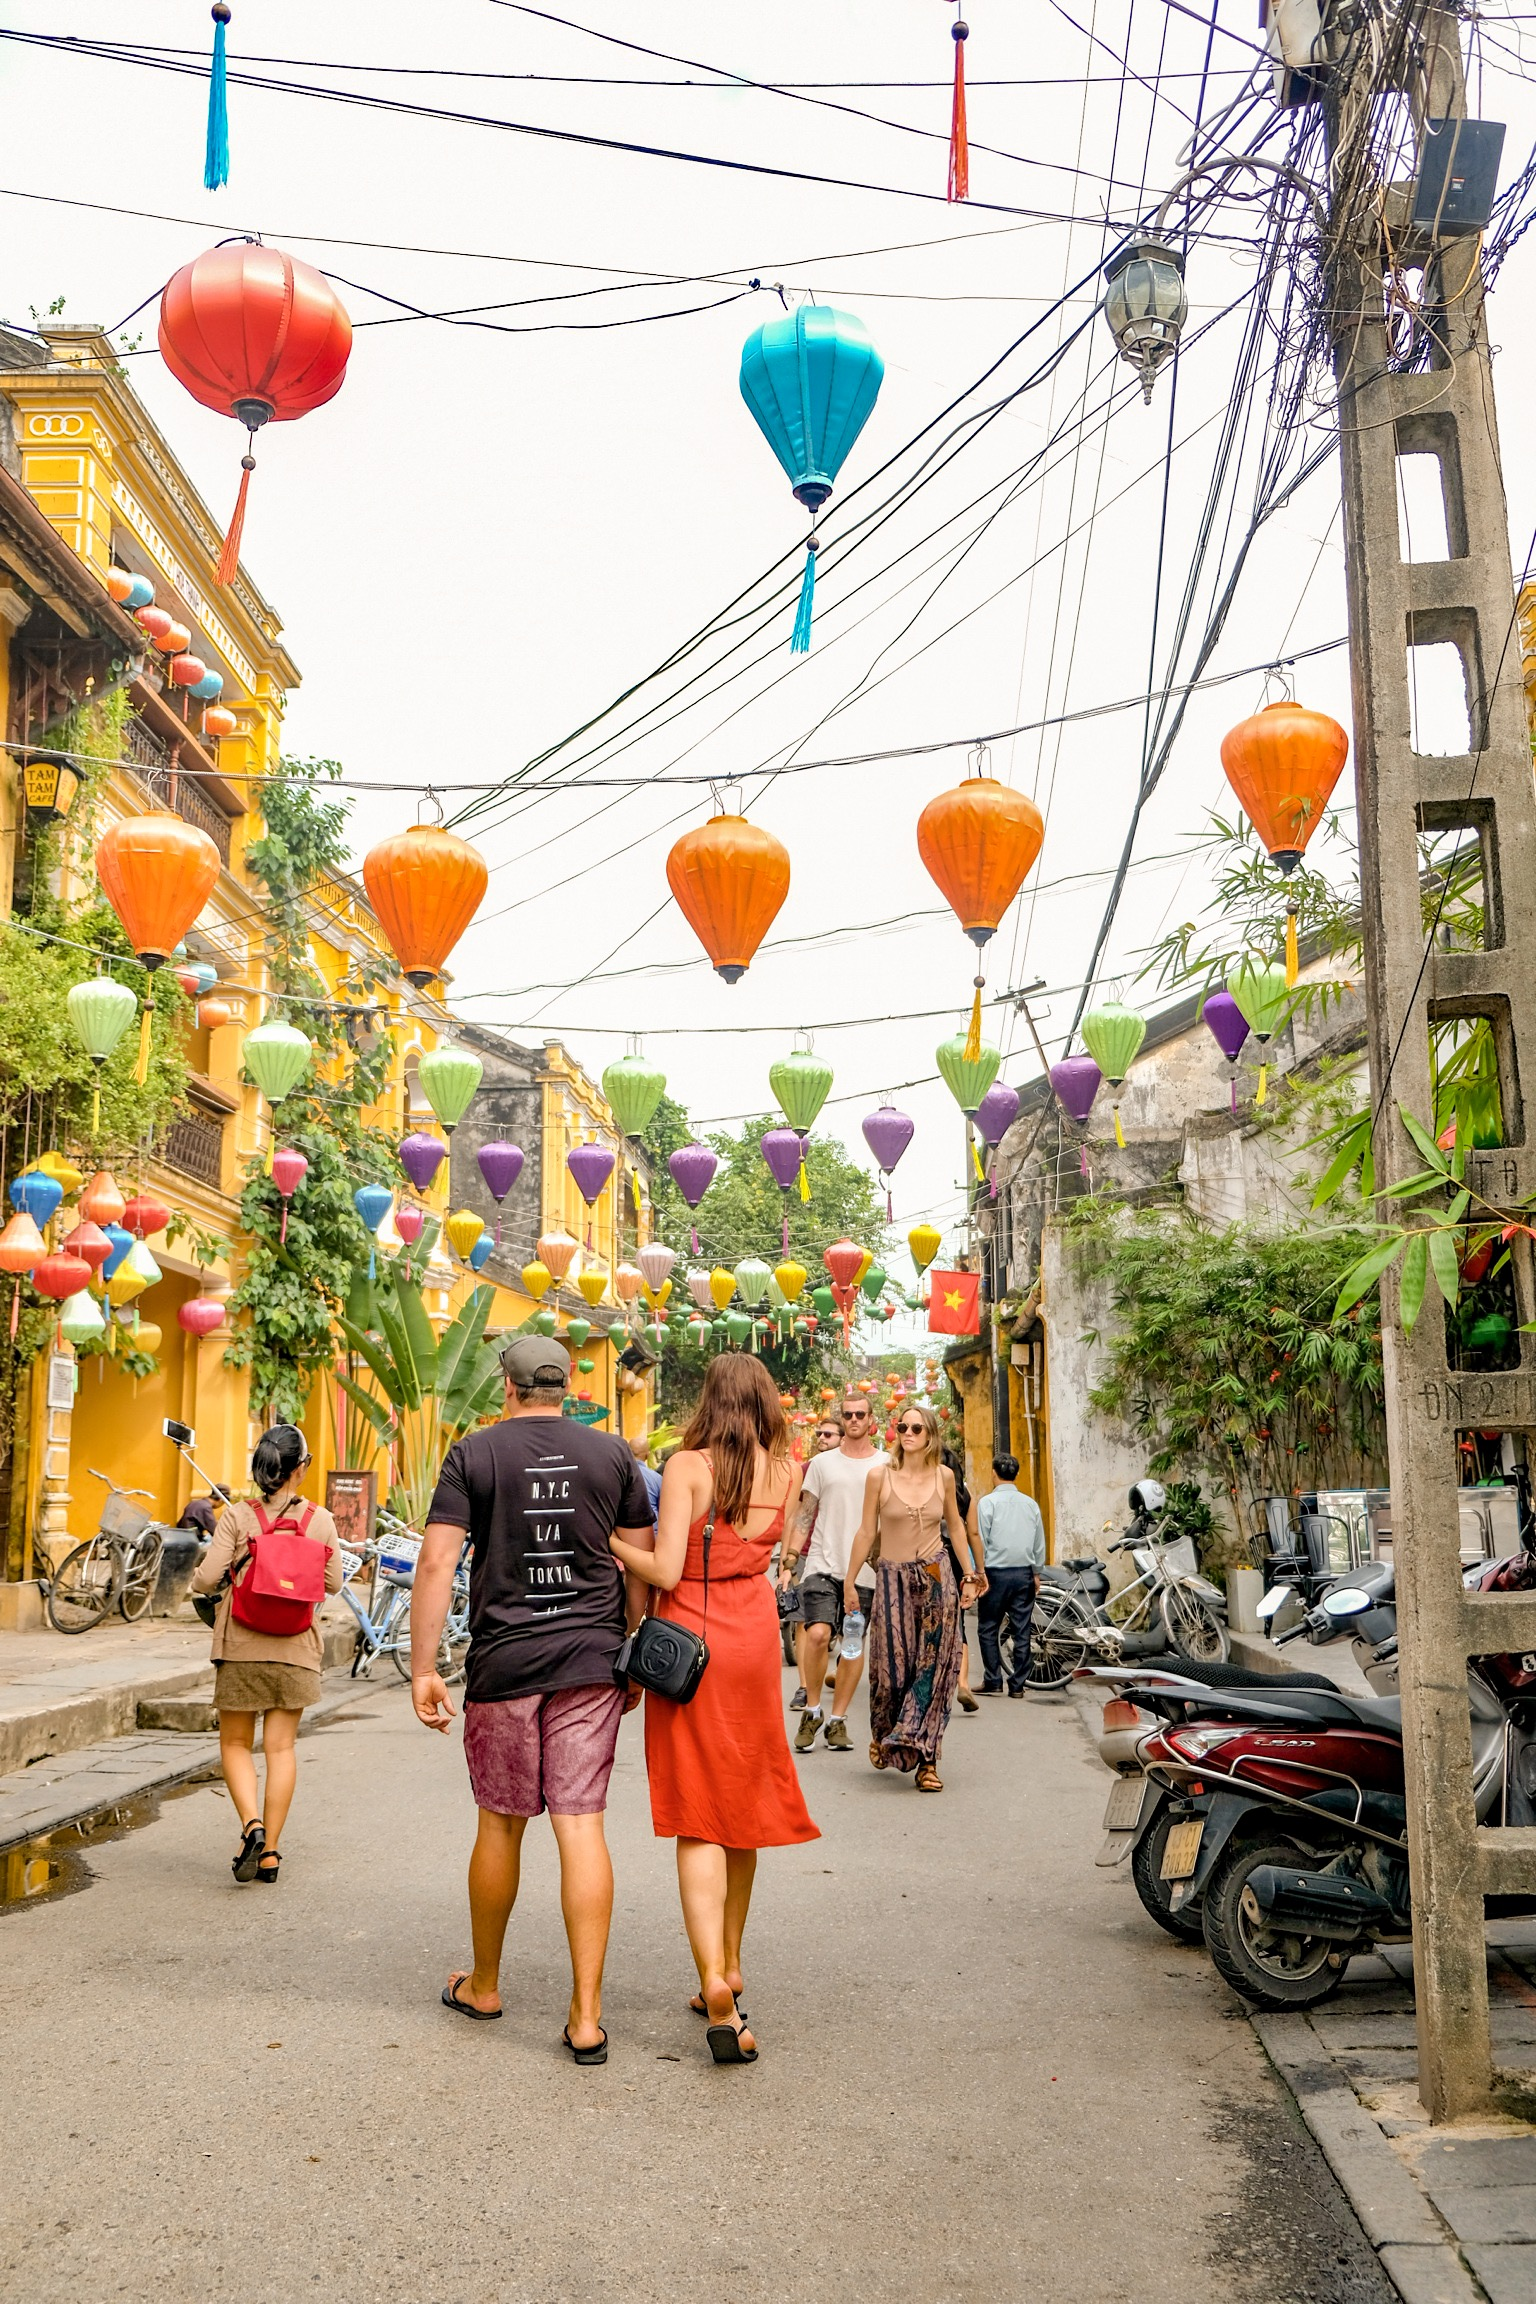 walking through the streets of hoi an ancient town